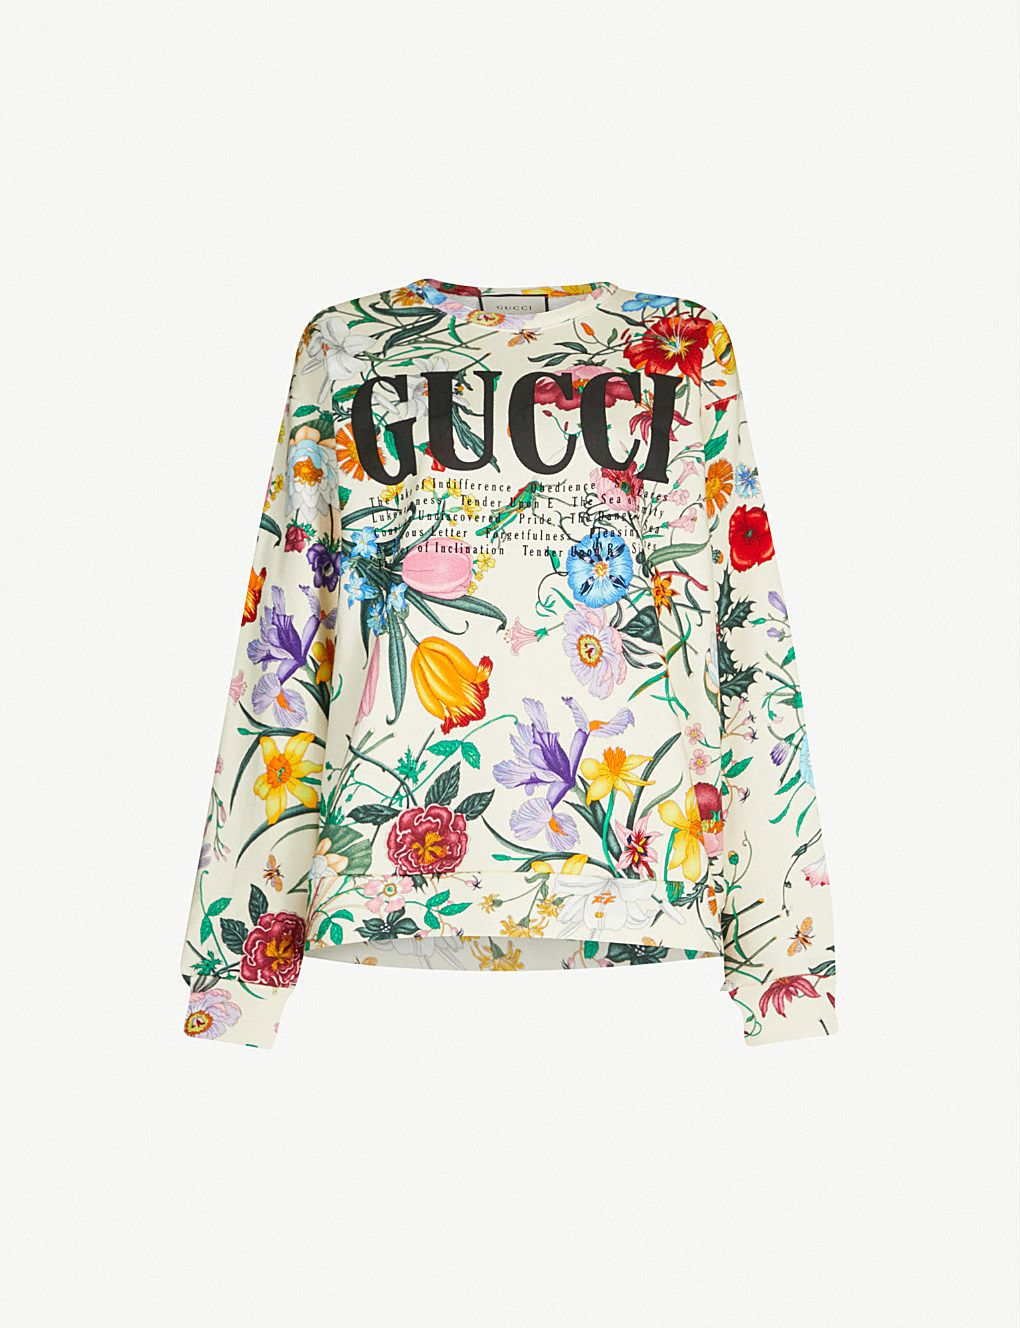 2e72416fdd08 GUCCI Floral-print cotton-jersey sweatshirt in 2019 | Graphic ...